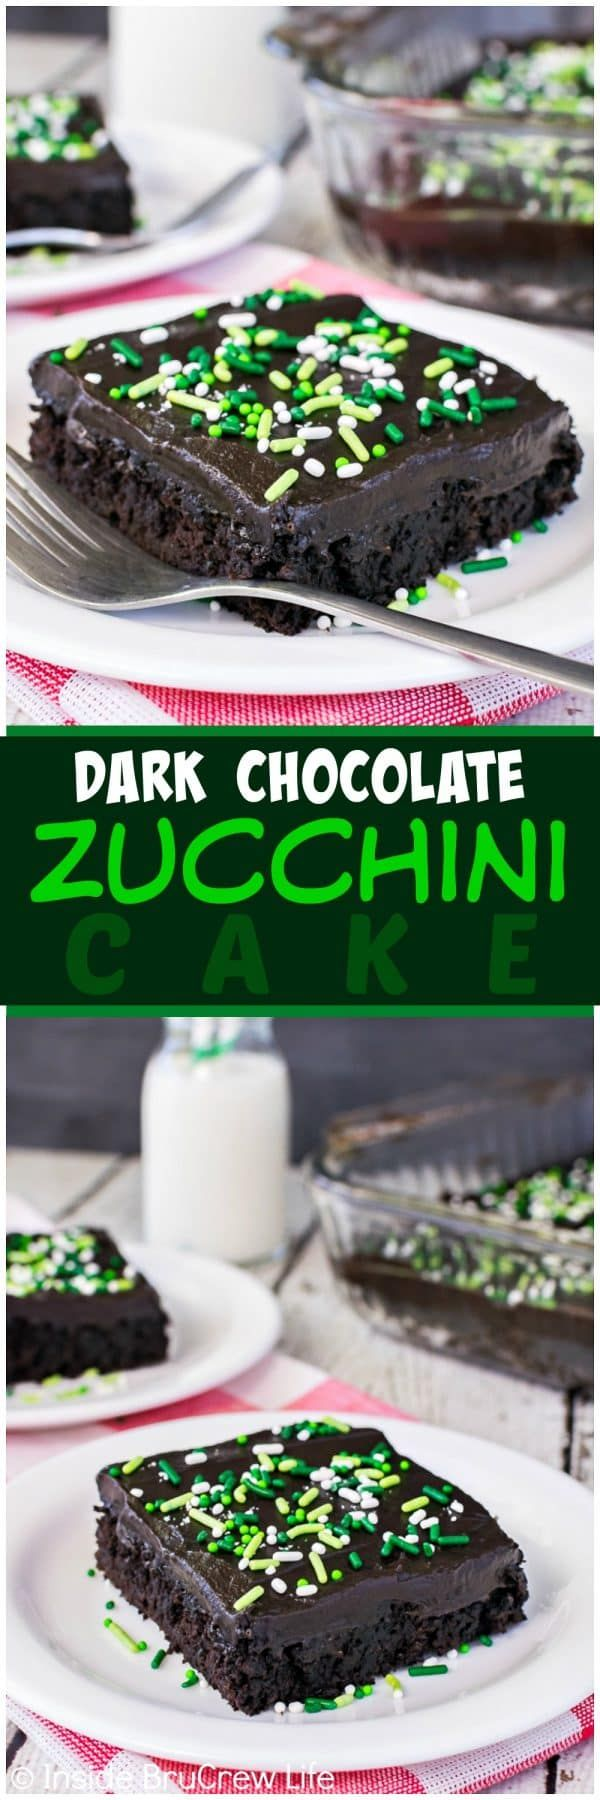 Dark Chocolate Zucchini Cake - creamy chocolate frosting and lots of green veggies makes this the best summer dessert!  Great recipe to use up those zucchinis from your garden!